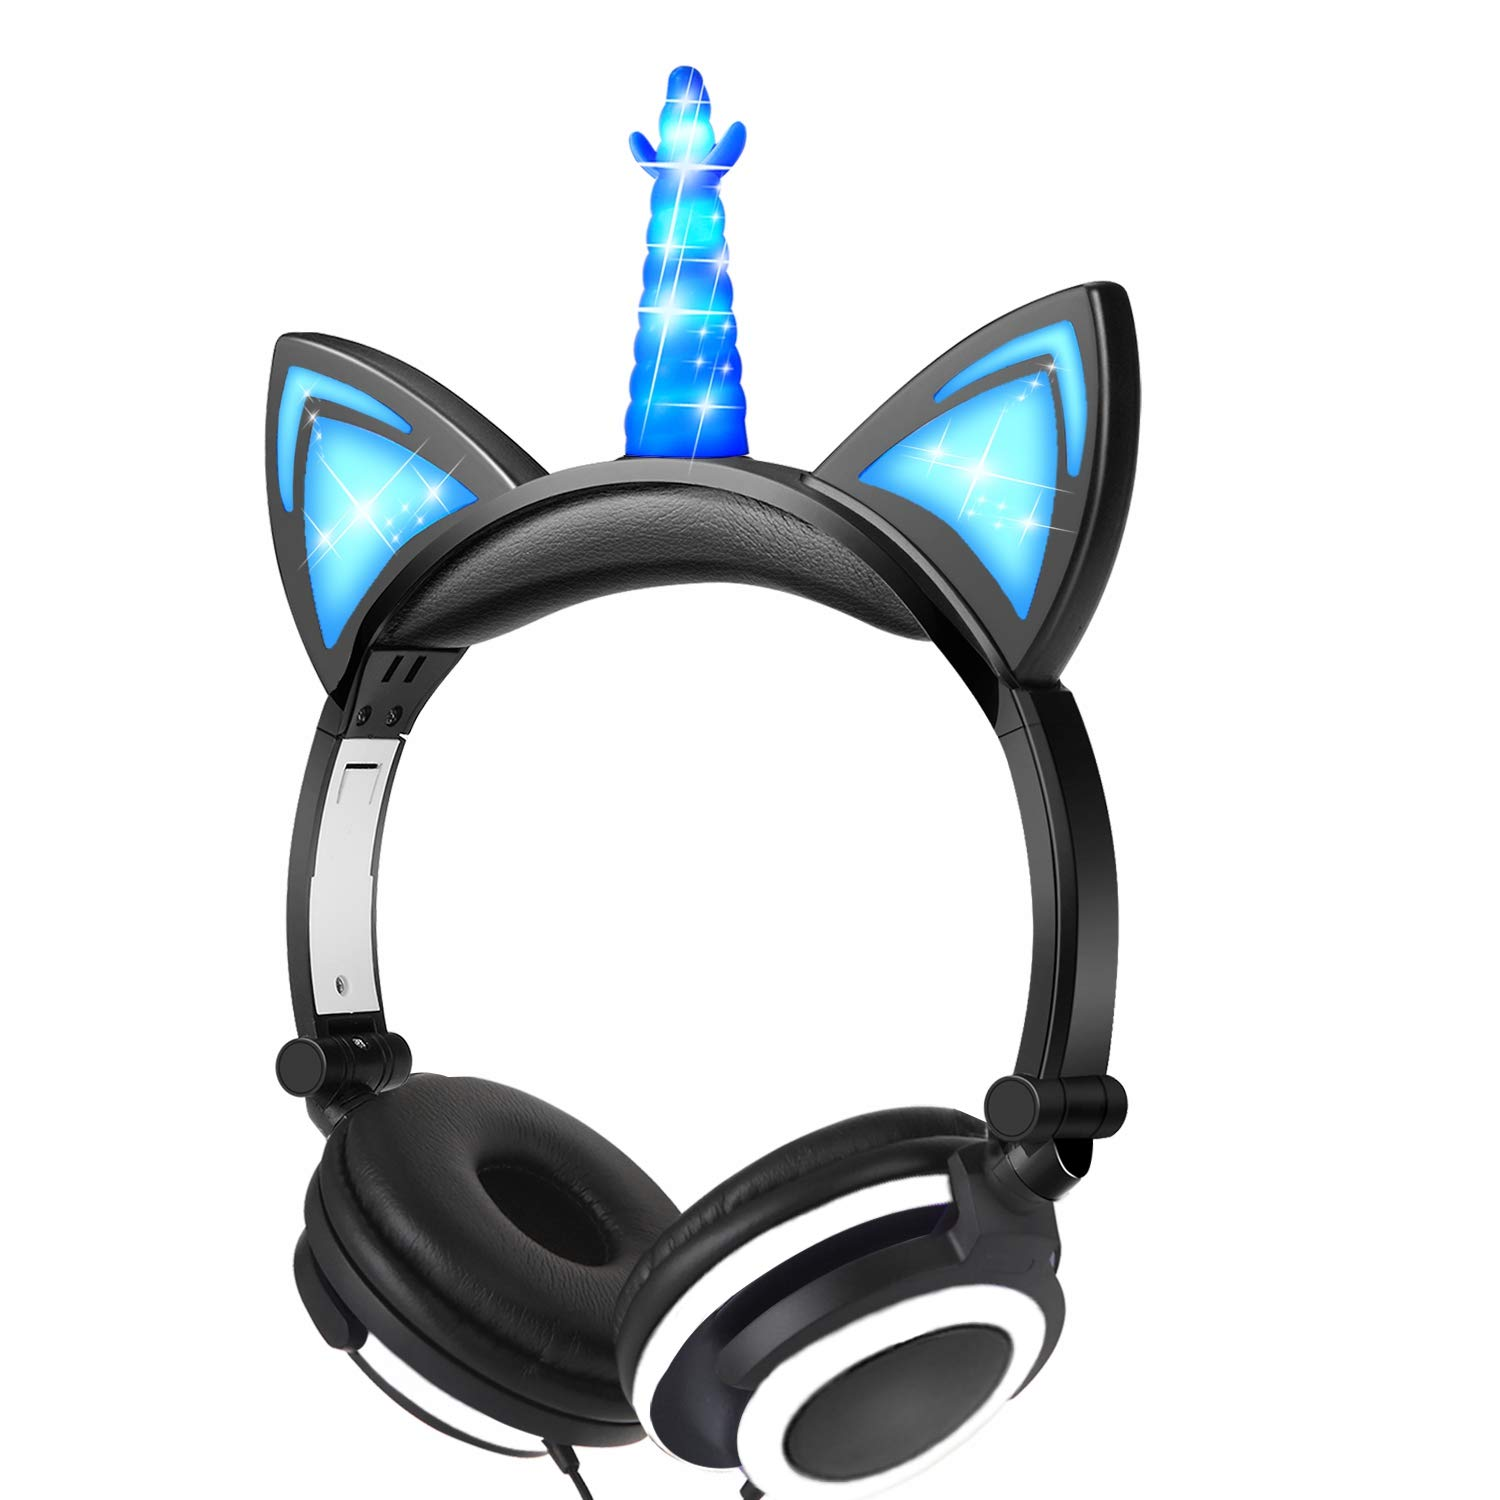 GBD Glowing Unicorn Headphones for Kids Boys Girls Toddlers Holiday Valentines Day Birthday Musical Gifts, Light Up Game Headset Headphone for Kids Tablets School Travel Exclusive Black/Blue